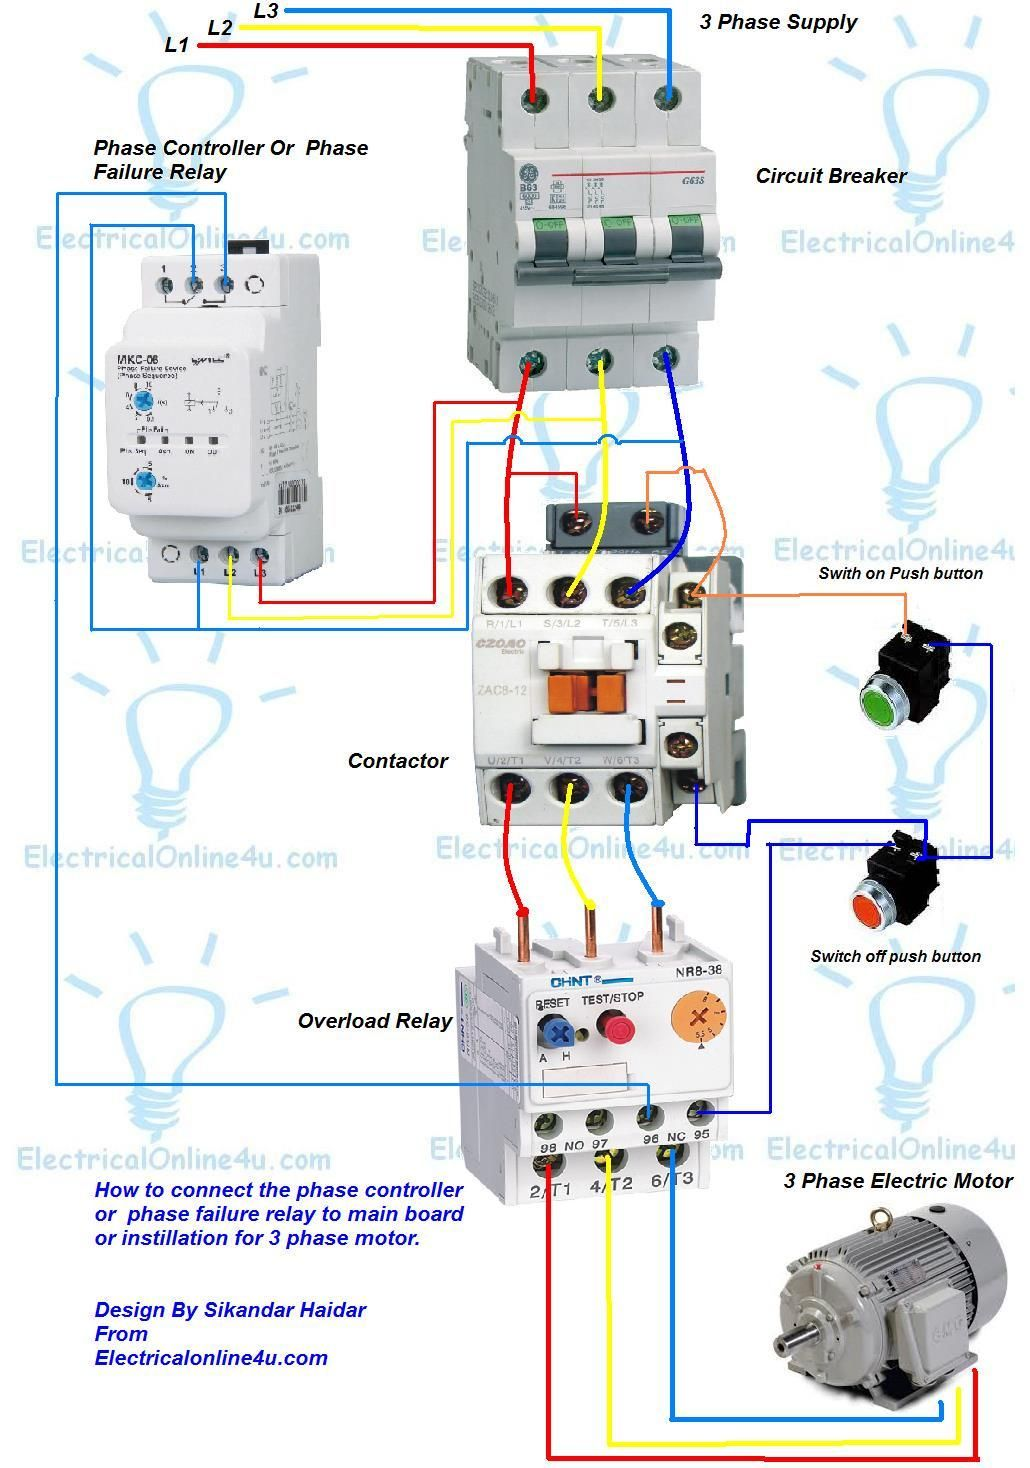 Phase Controller Wiring Failure Relay Diagram Di On Line List